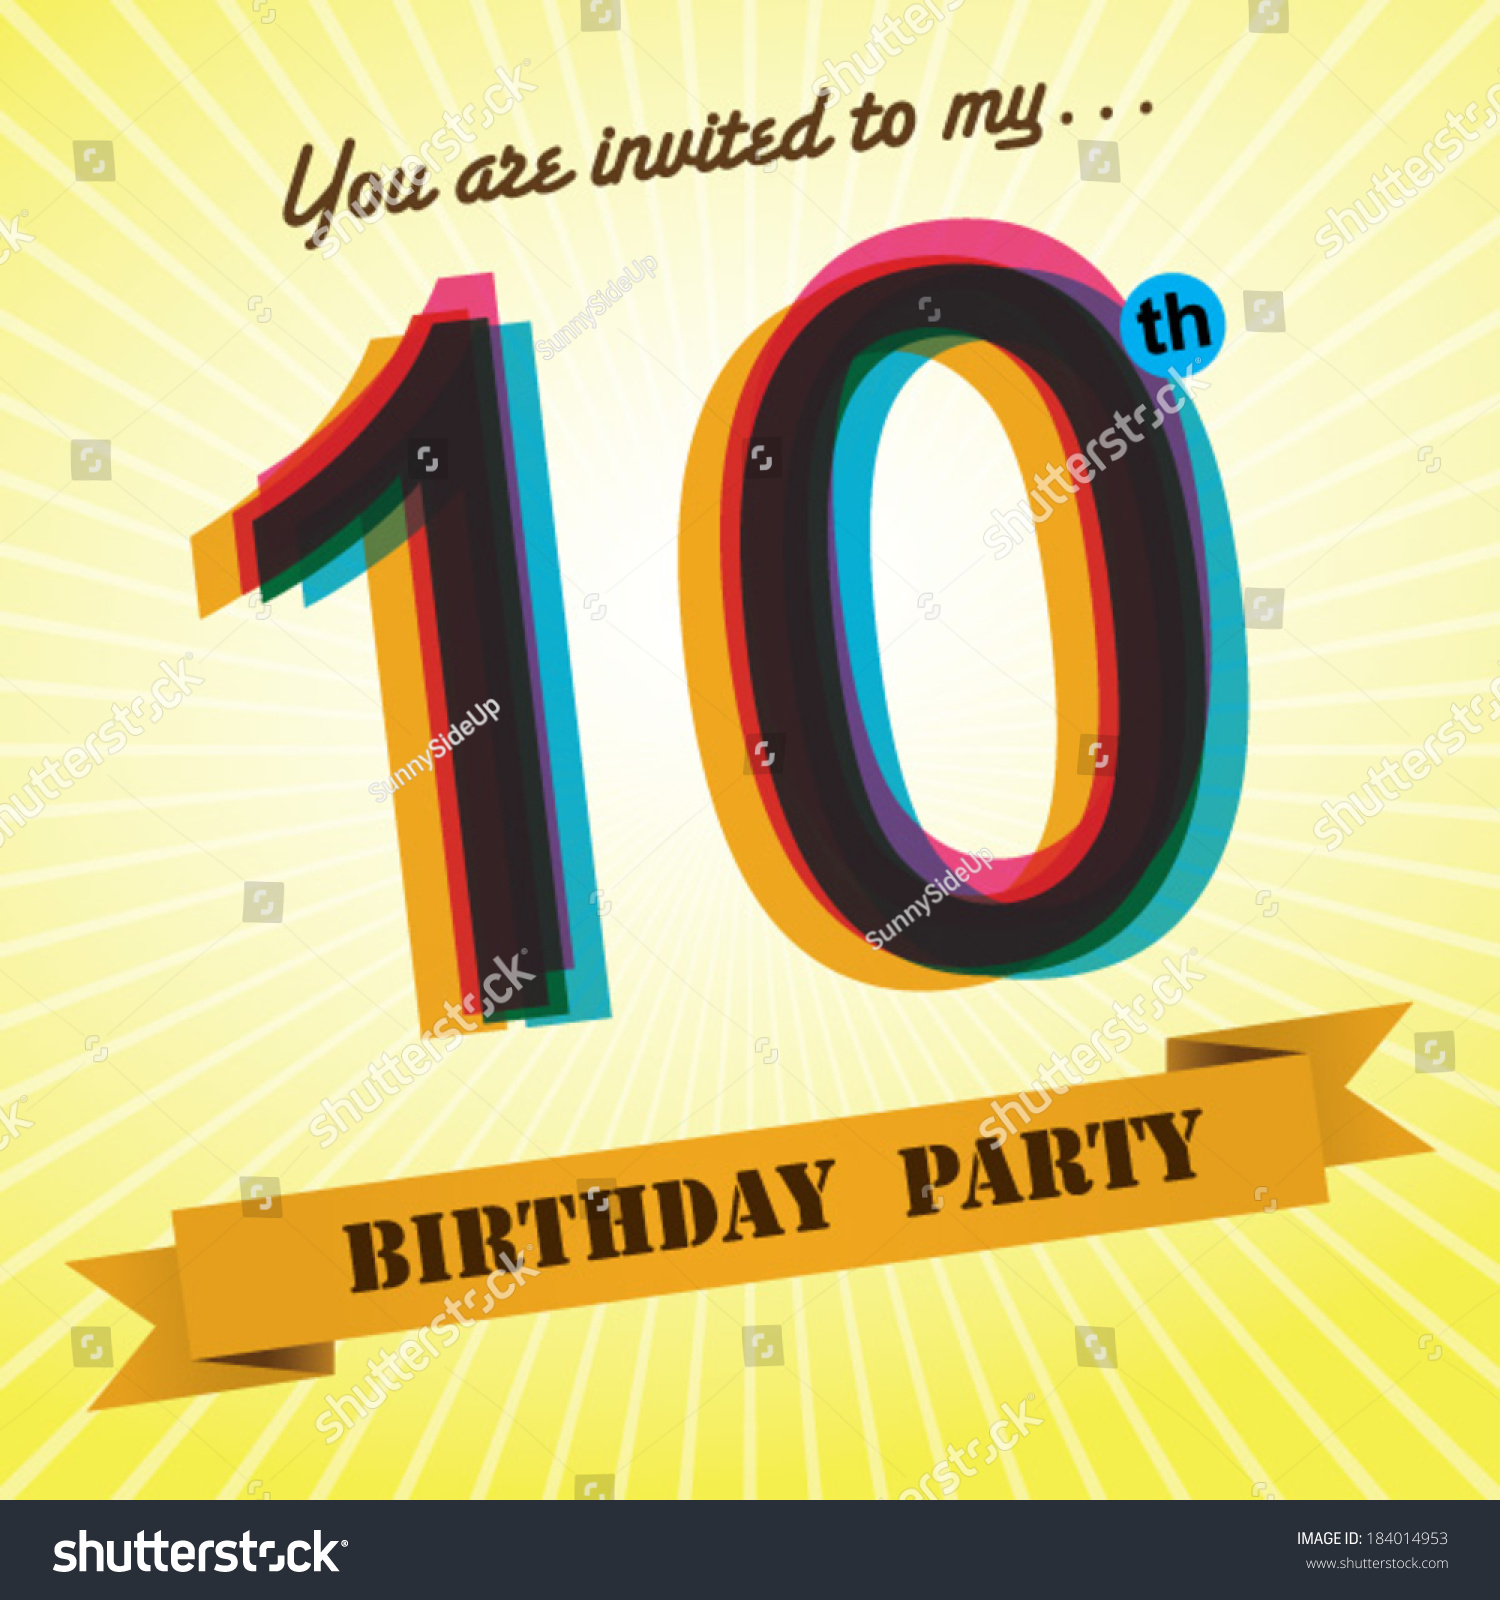 10th birthday party invite template design stock vector 2018 10th birthday party invite template design in retro style vector background filmwisefo